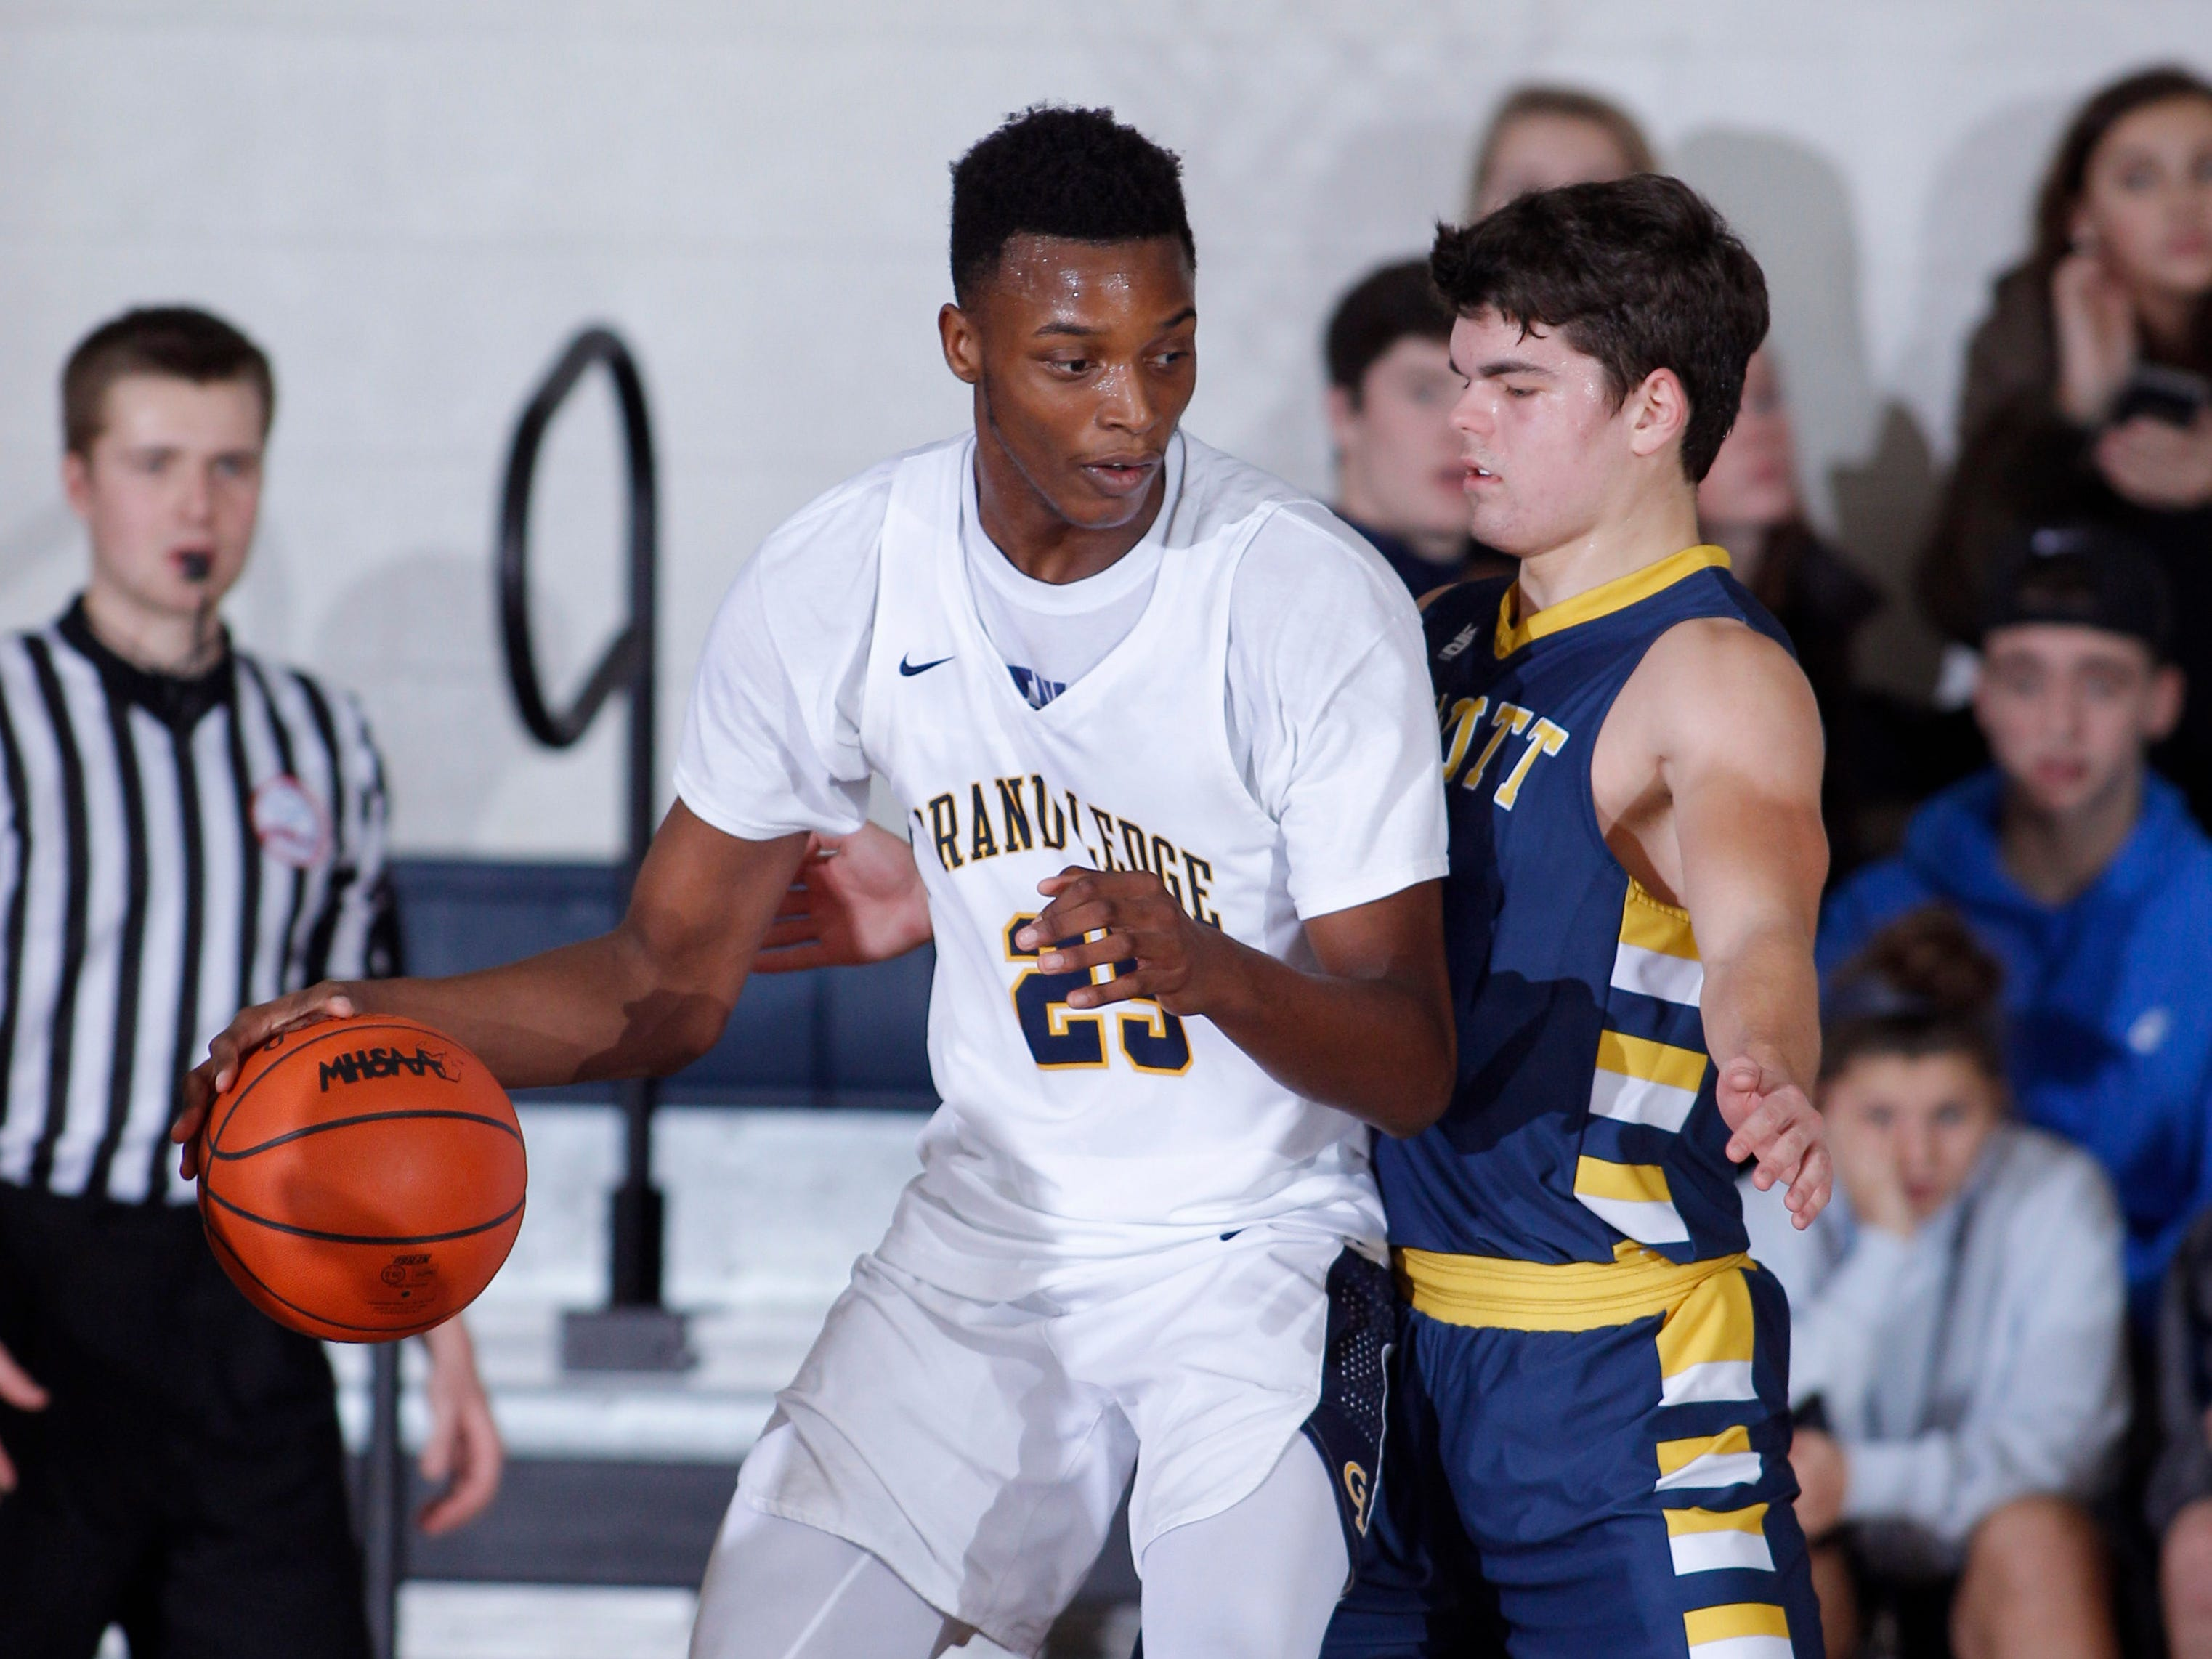 Grand Ledge's Javel Lewis, left, works against DeWitt's Isaac Hungerford, Tuesday, Jan. 15, 2019, in Grand Ledge, Mich.